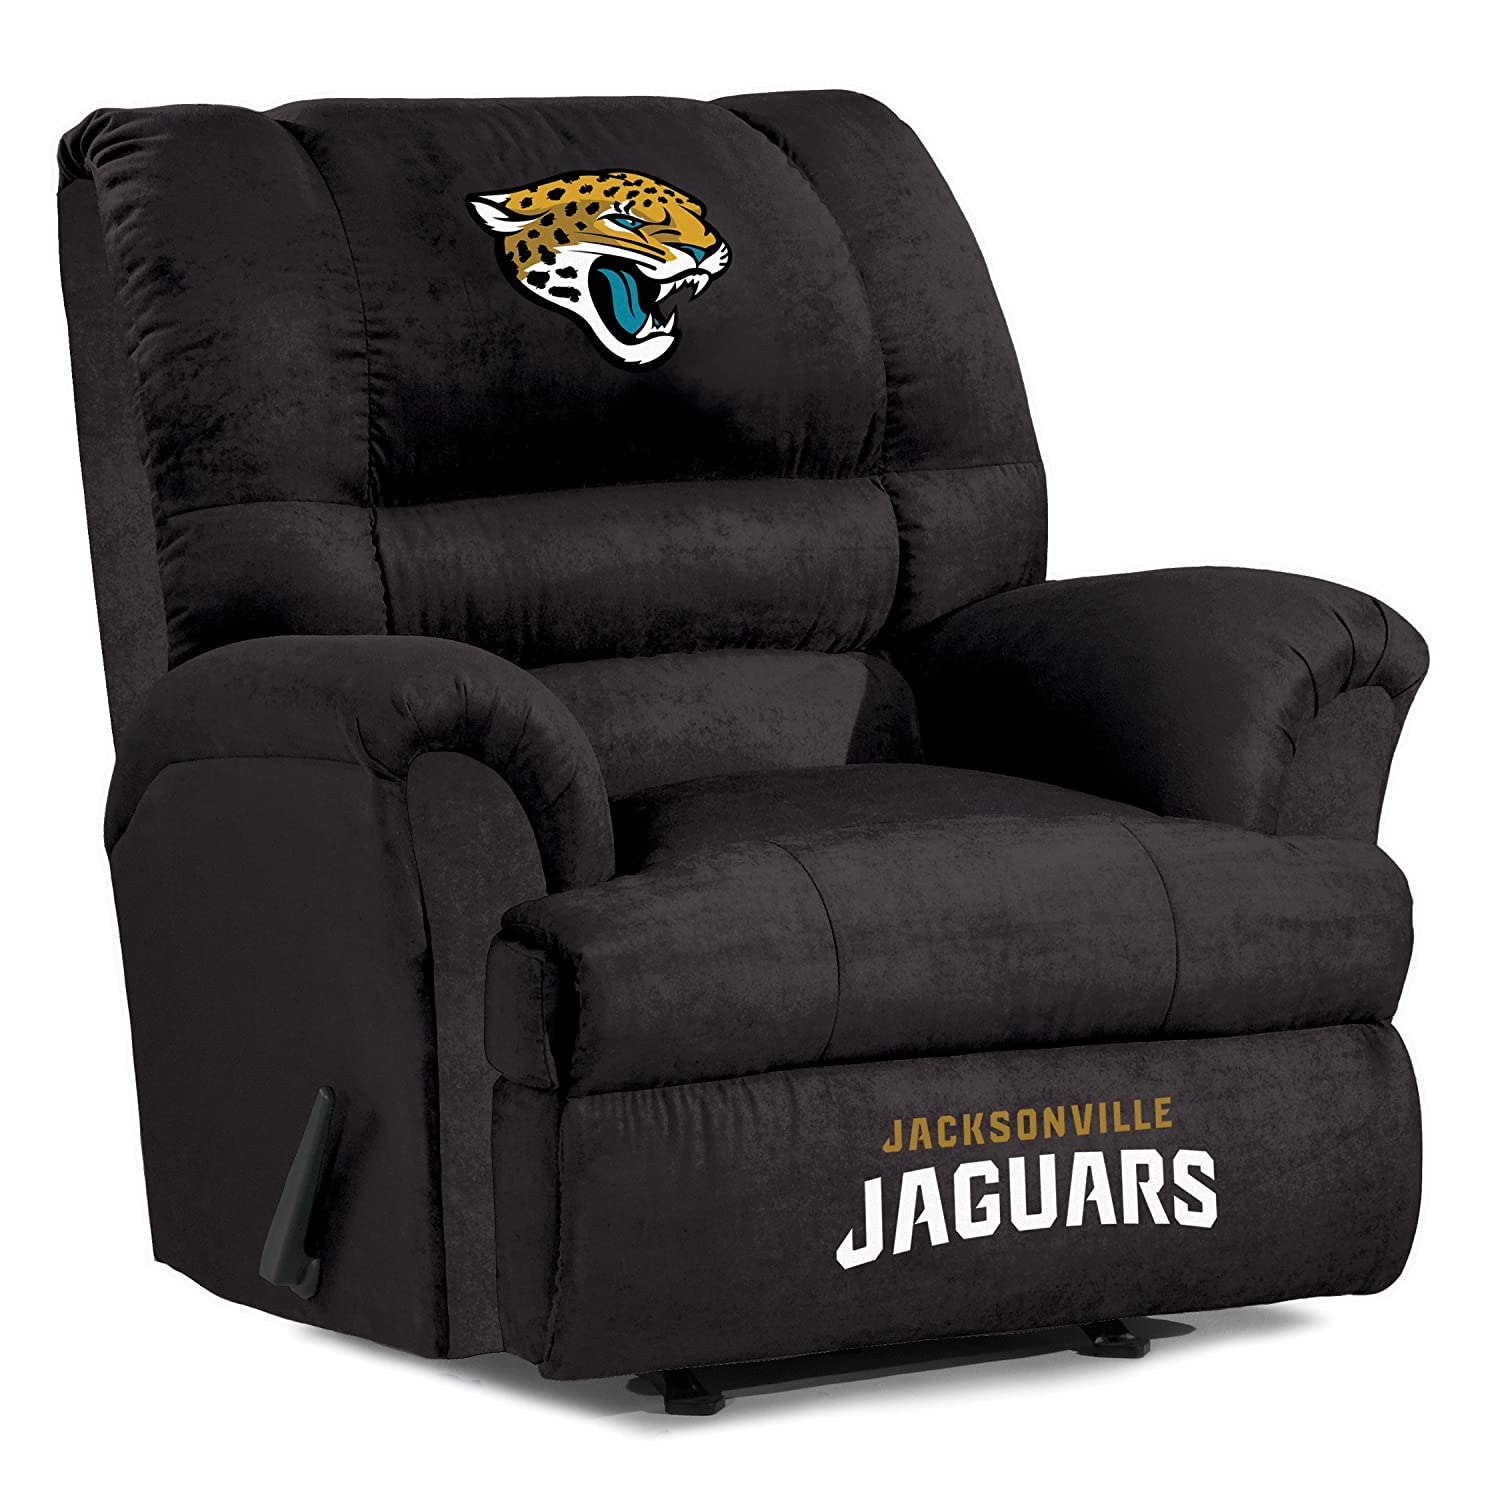 Amazon.com  Imperial Officially Licensed NFL Furniture Big Daddy Microfiber Rocker Recliner Arizona Cardinals  Sports Fan Recliners  Sports u0026 Outdoors  sc 1 st  Amazon.com & Amazon.com : Imperial Officially Licensed NFL Furniture: Big Daddy ... islam-shia.org